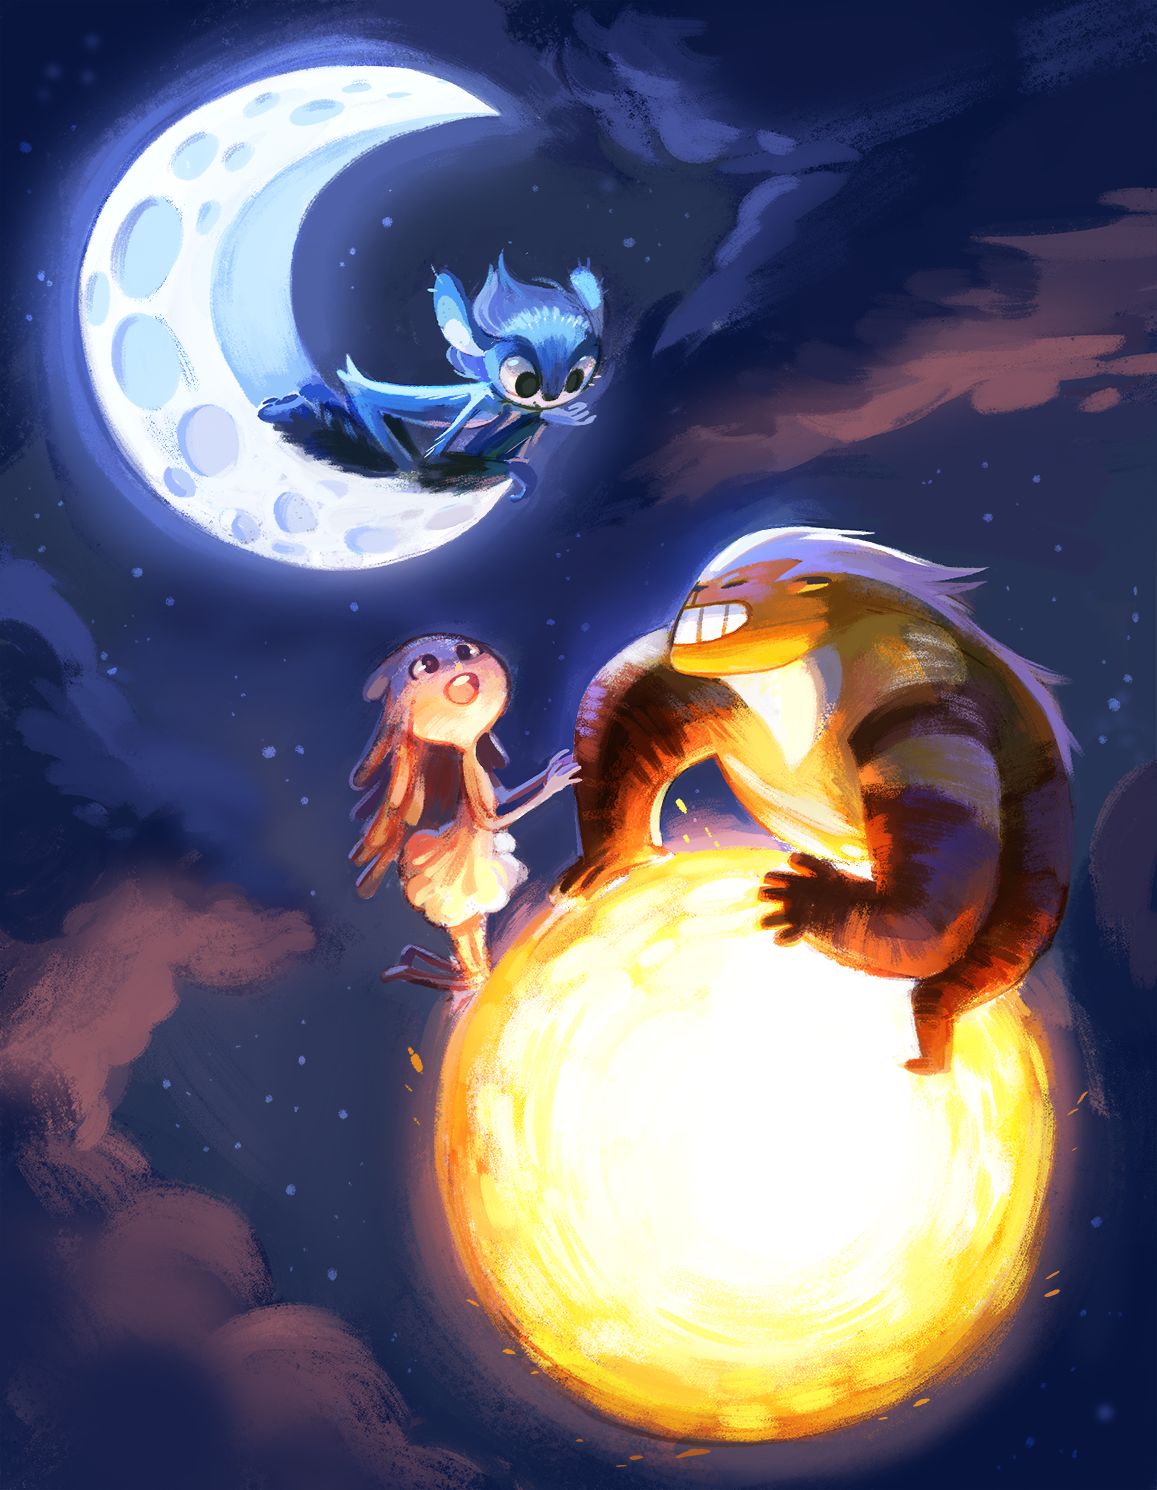 Pin By Nana On Your Pinterest Likes Guardian Of The Moon Moon Art Art